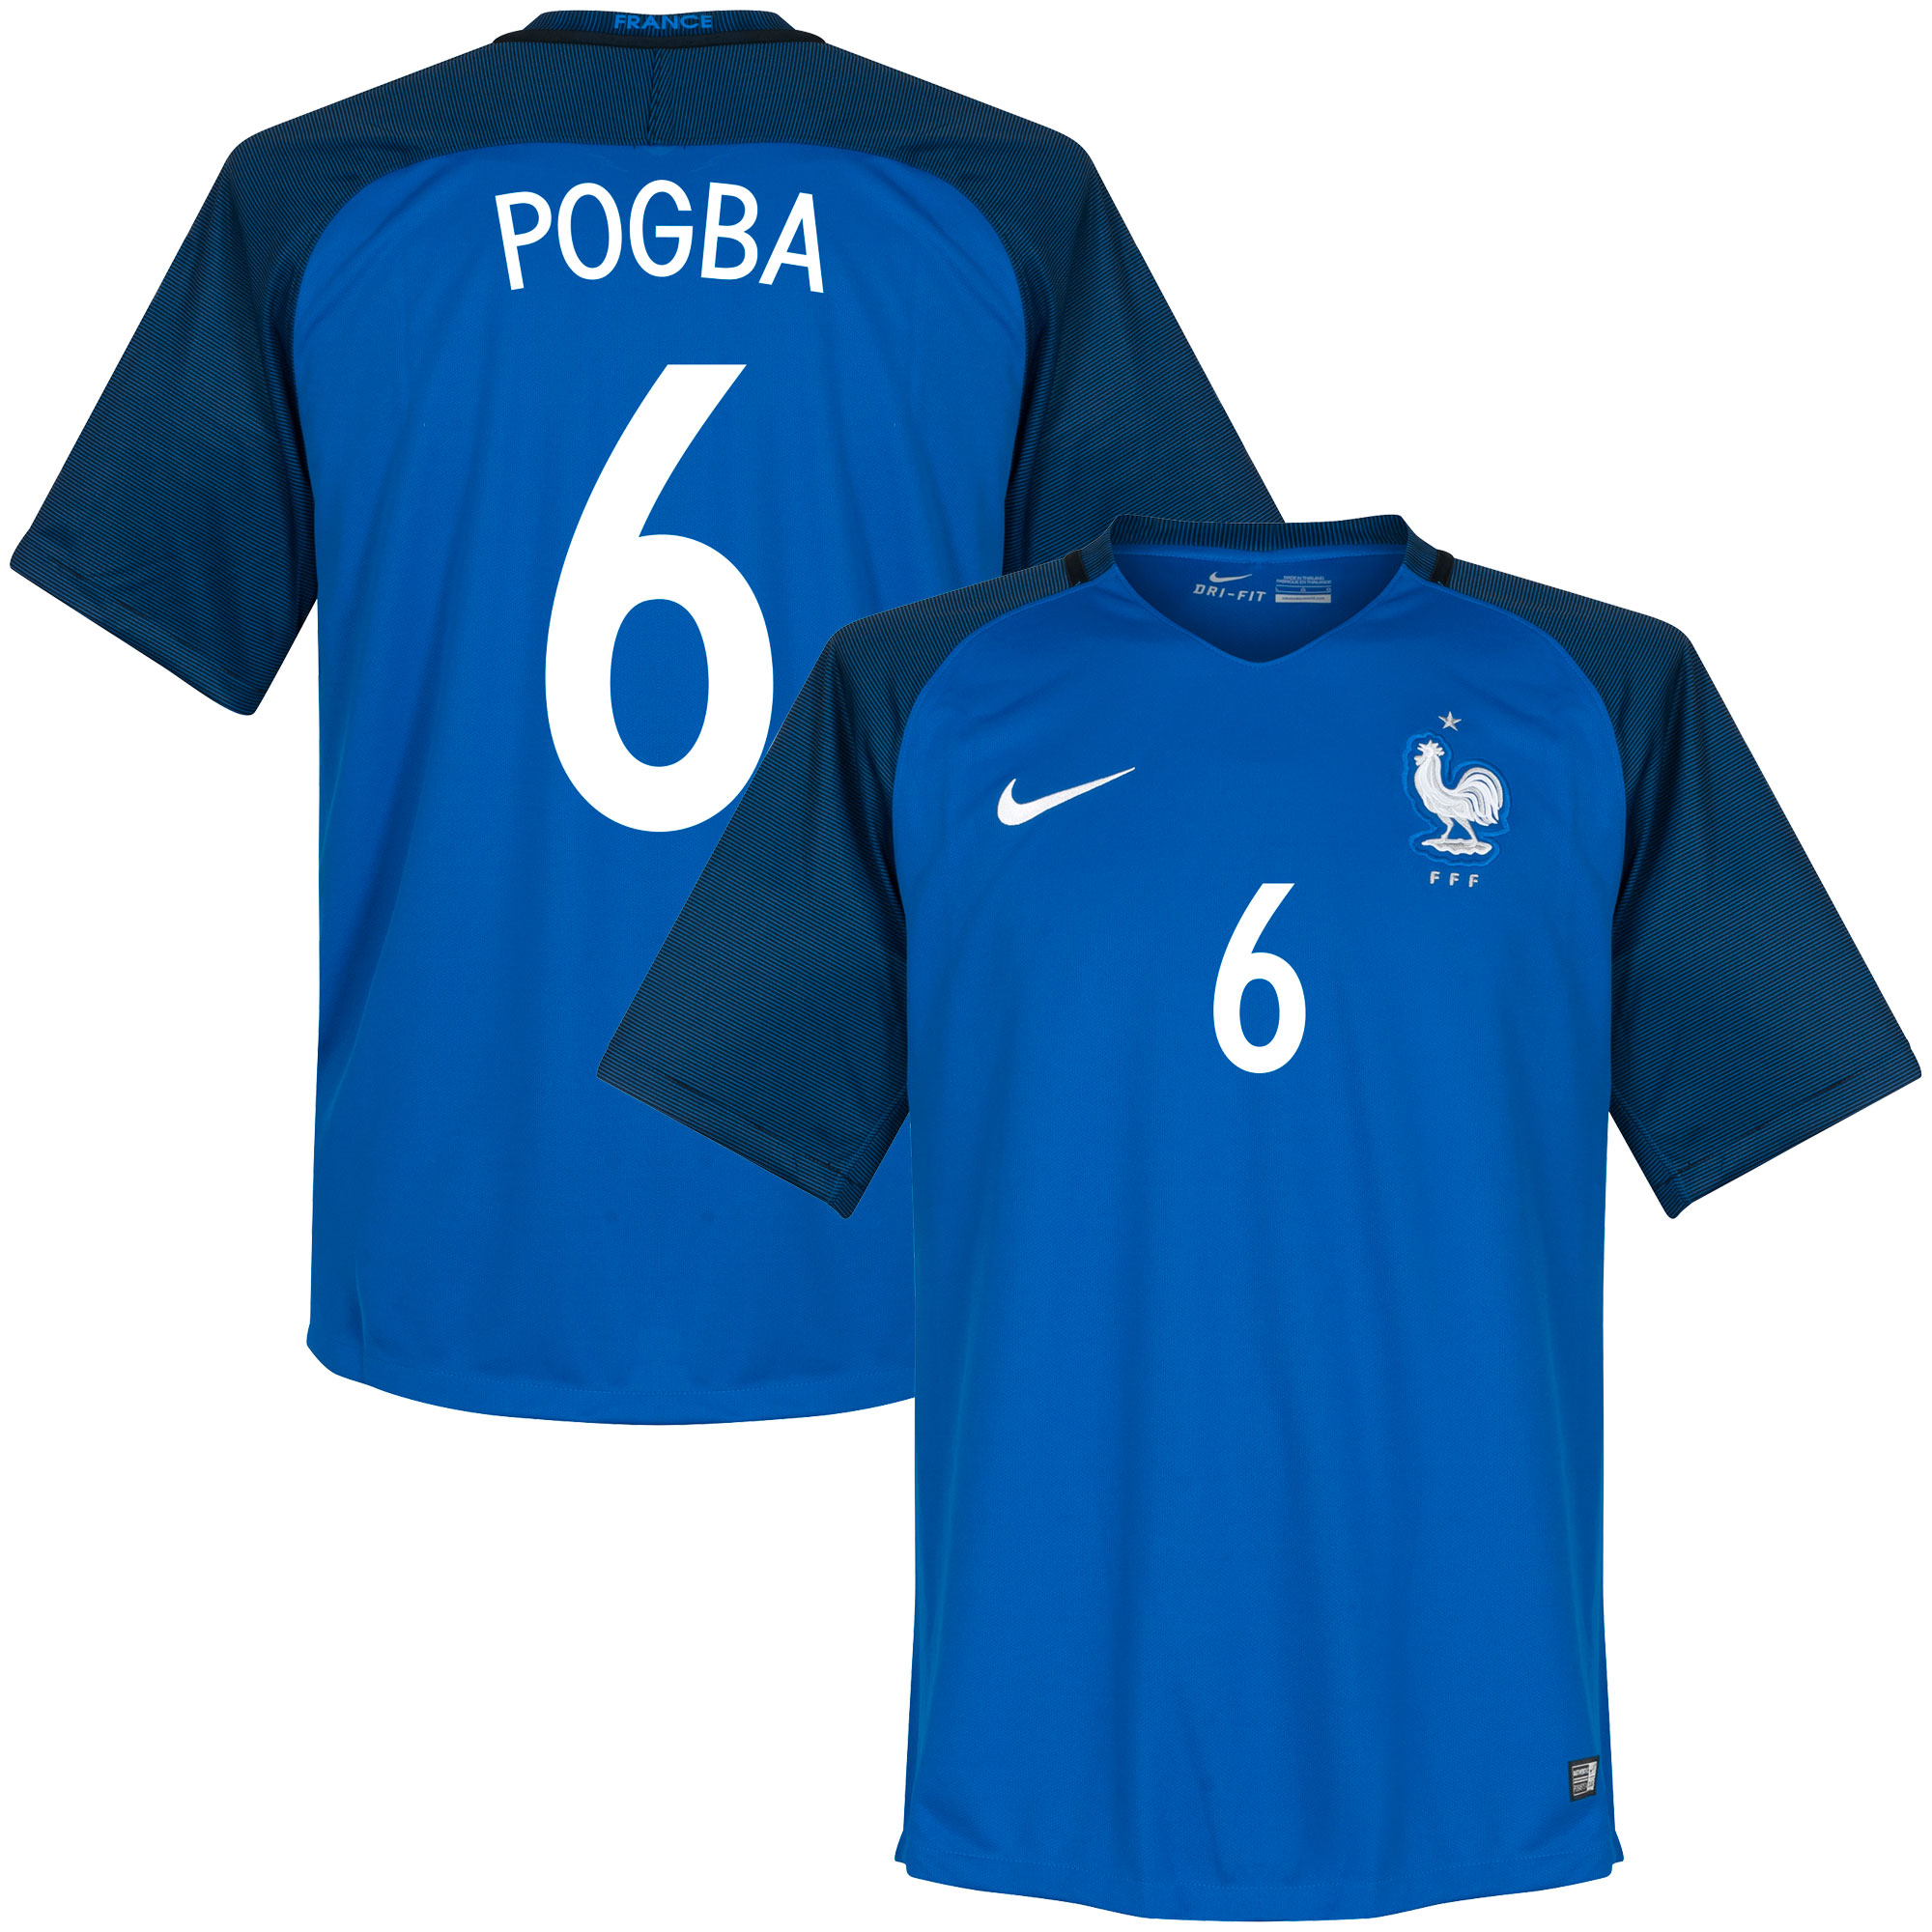 France Home Pogba Jersey 2016 / 2017 (Fan Style Printing) - XL